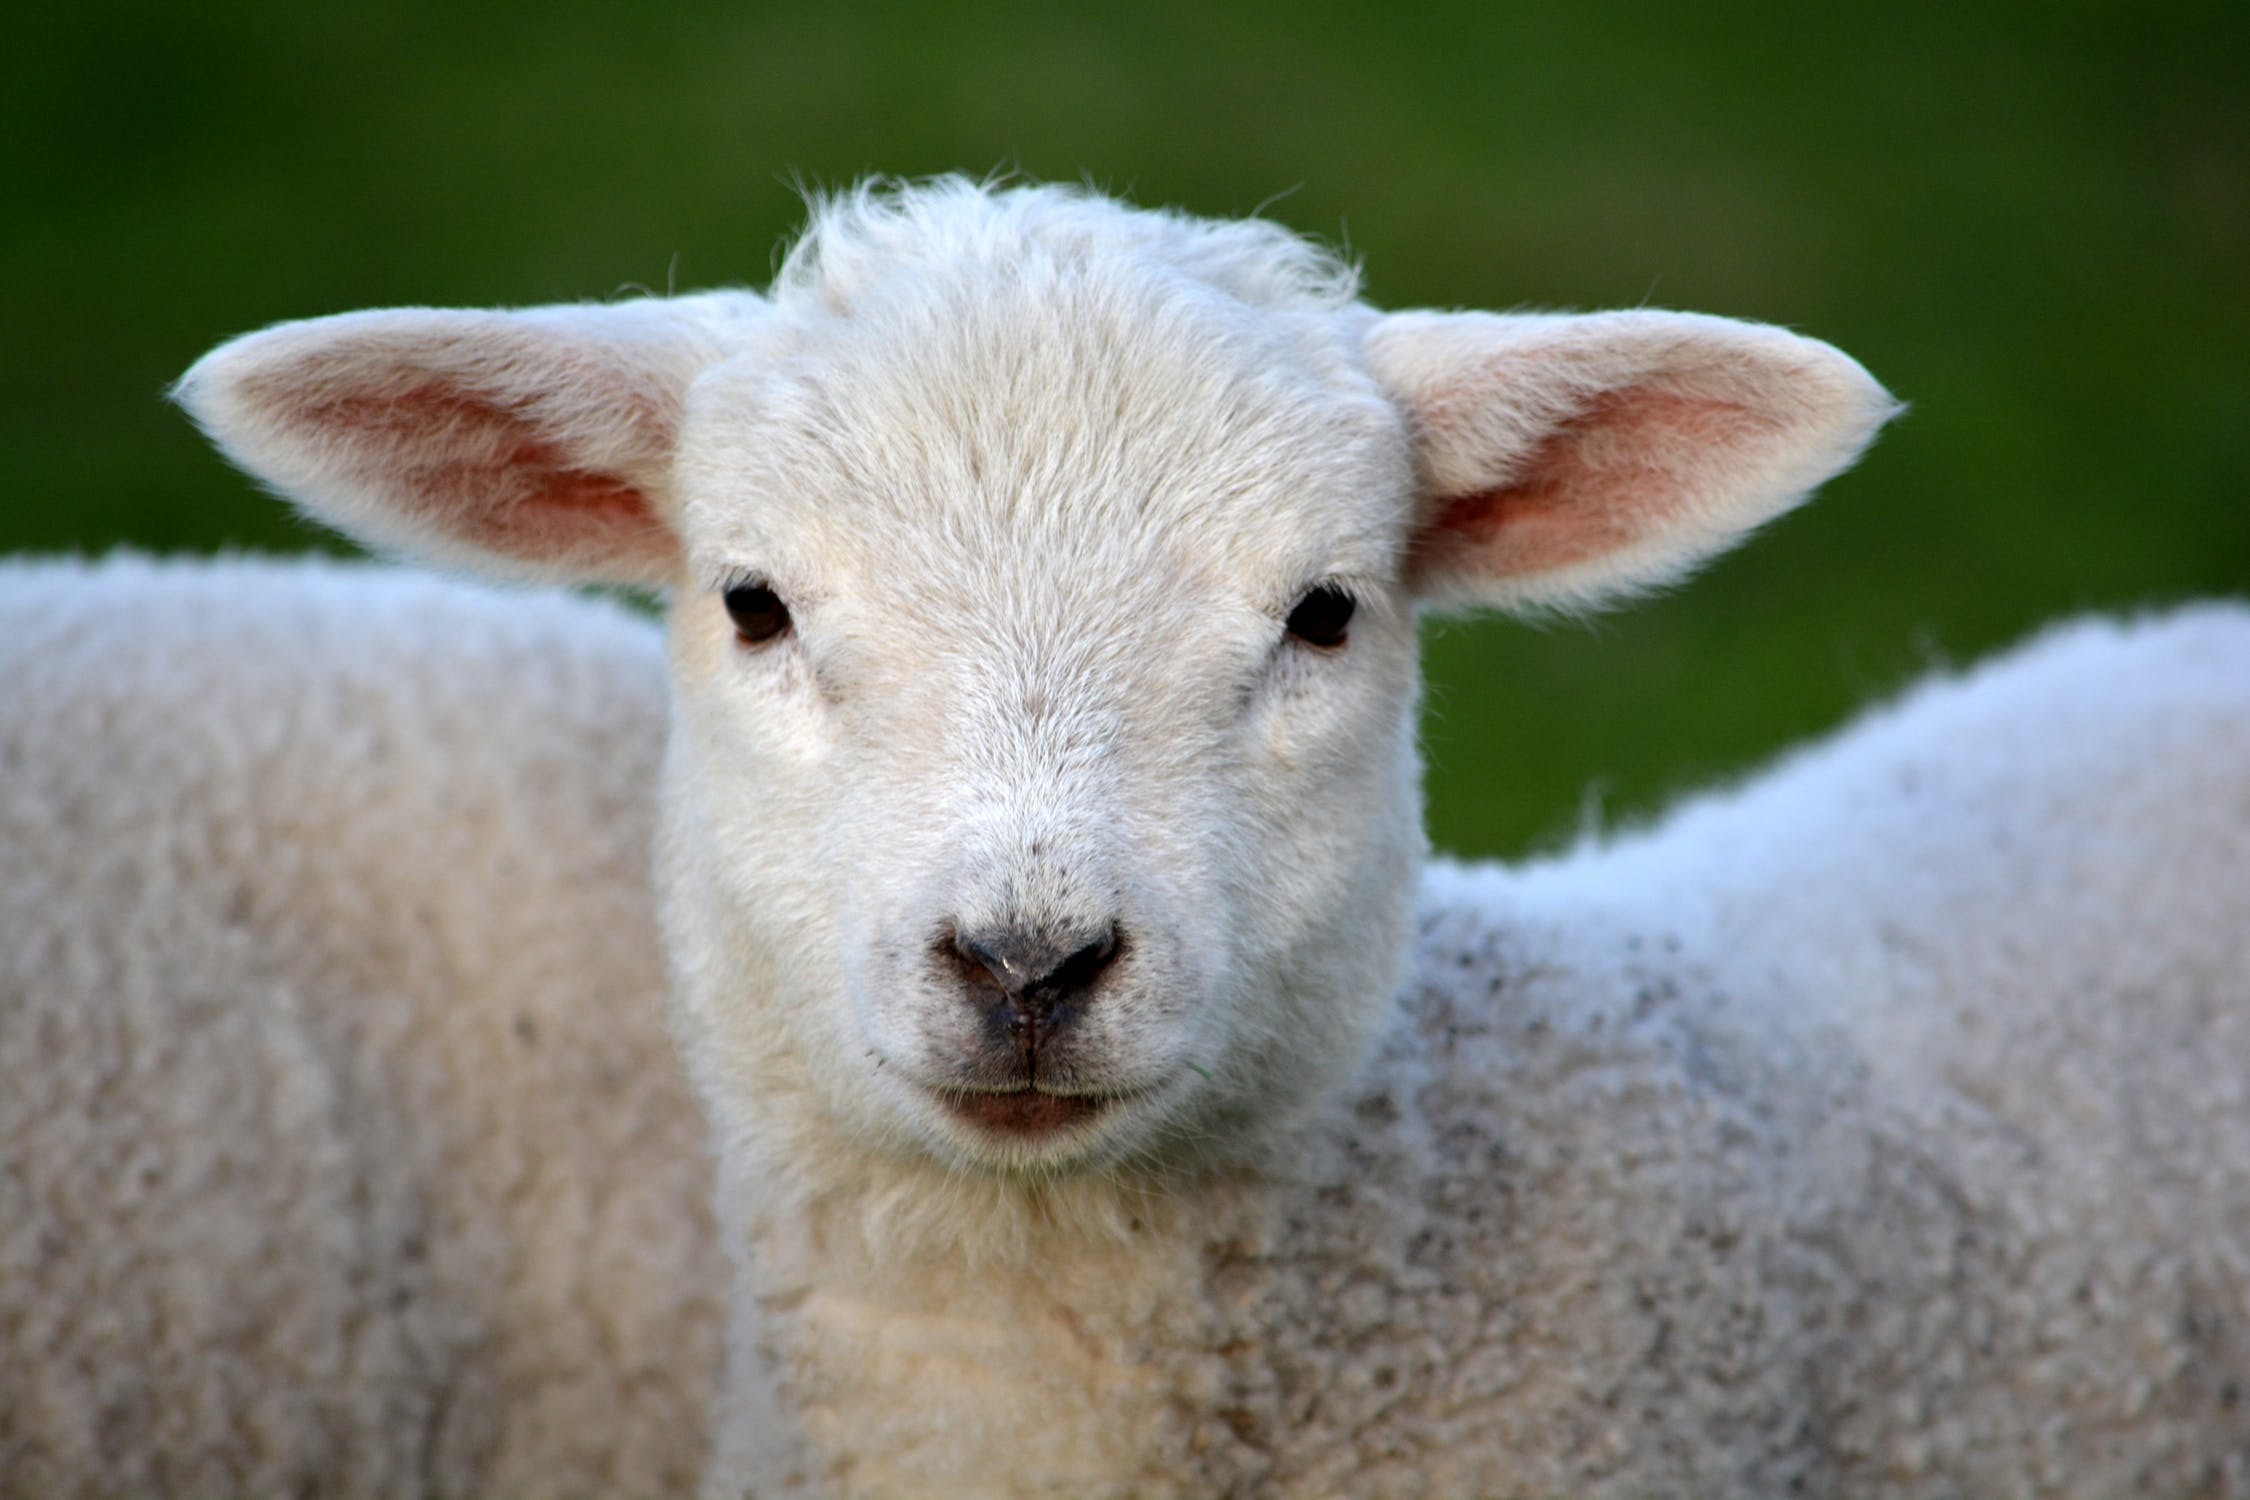 https://www.pexels.com/photo/white-coated-lamb-59821/